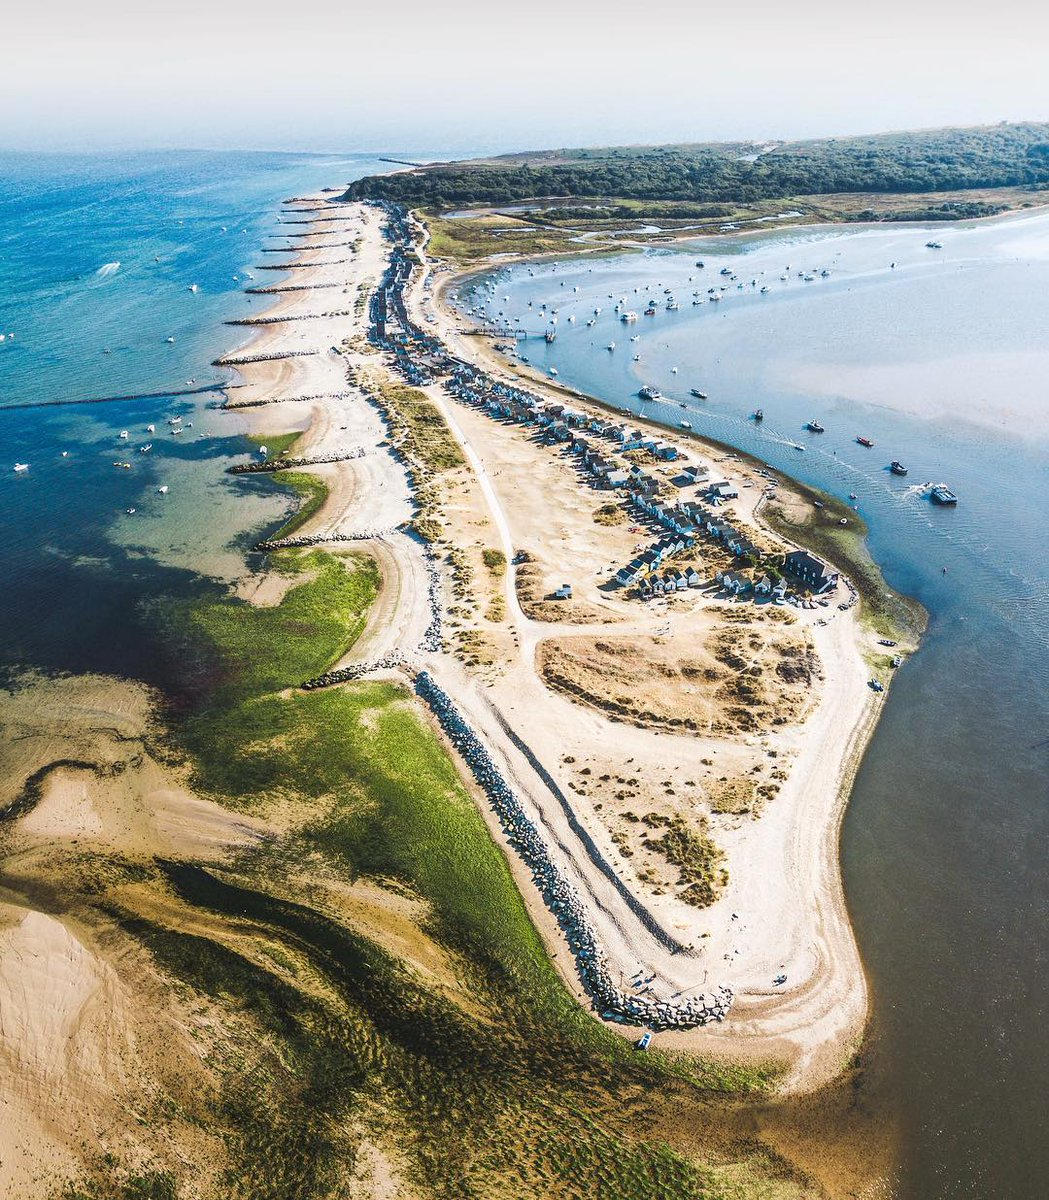 A truly unique location, #MudefordSpit joins with the ancient headland and SSSI nature reserve of #HengistburyHead and is at the opening to #Christchurch 's spectacular natural harbour! #LoveXChurch   : IG/ enjoythelight  #Dorset #VisitEngland  #ChristchurchHarbour #Mudeford <br>http://pic.twitter.com/D2x0dJb9r5